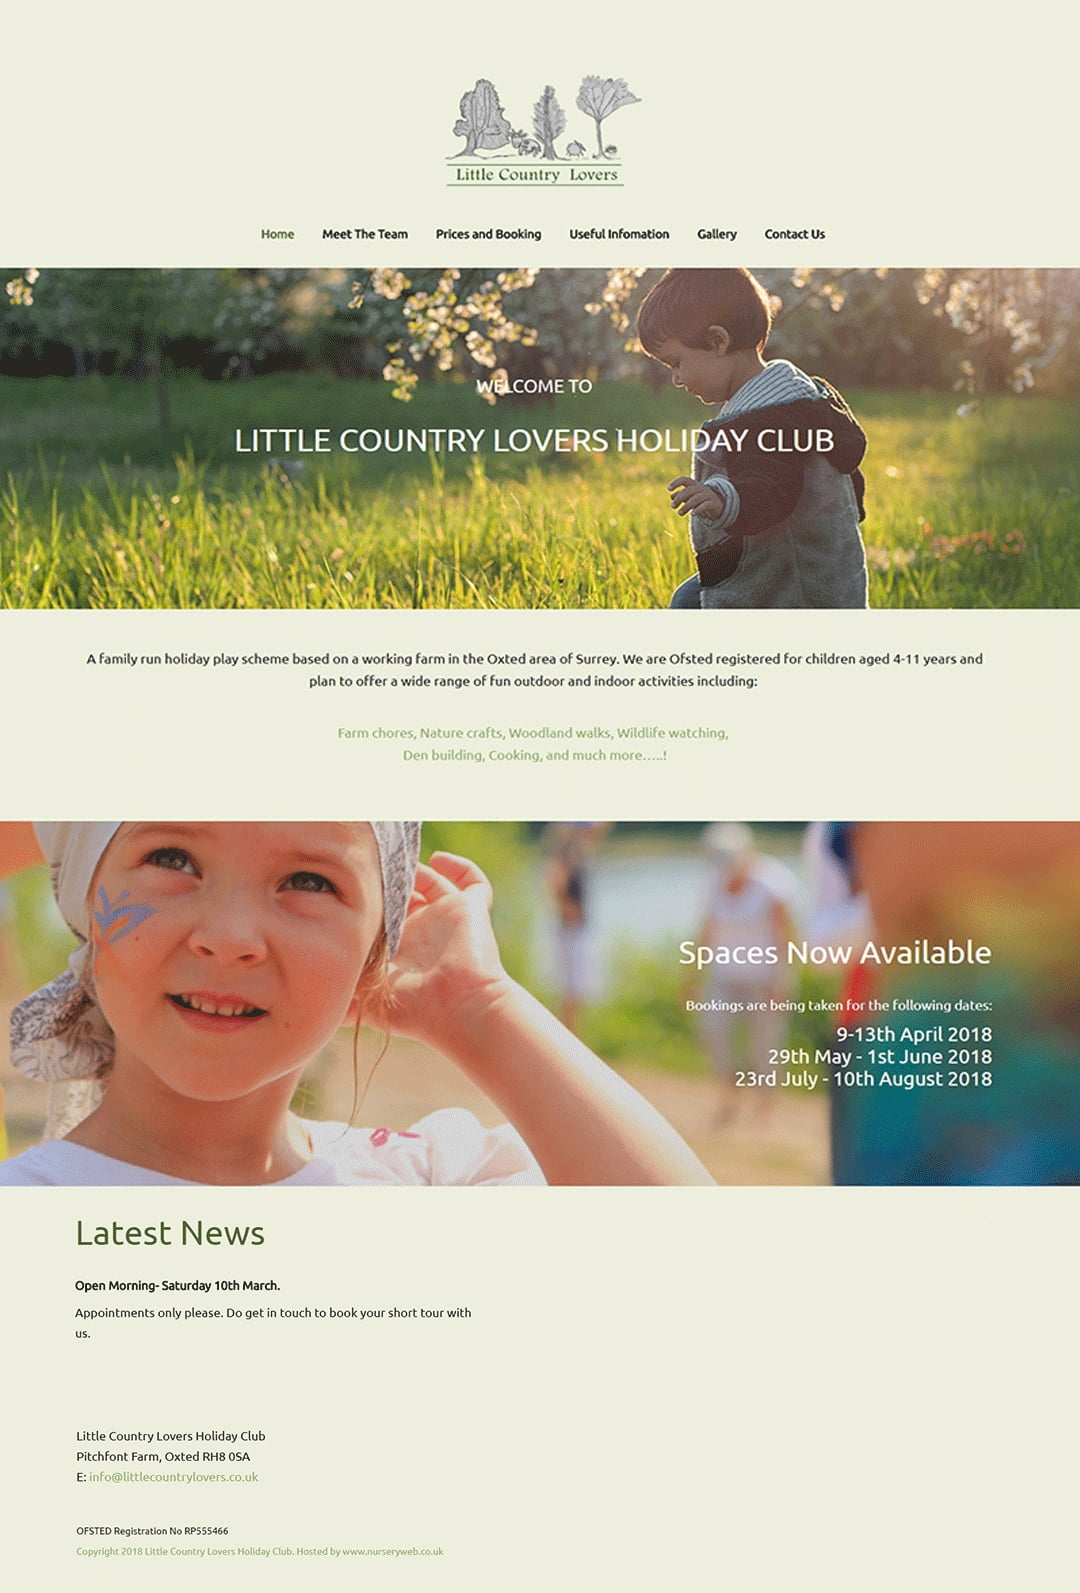 Little Country Lovers Holiday Club